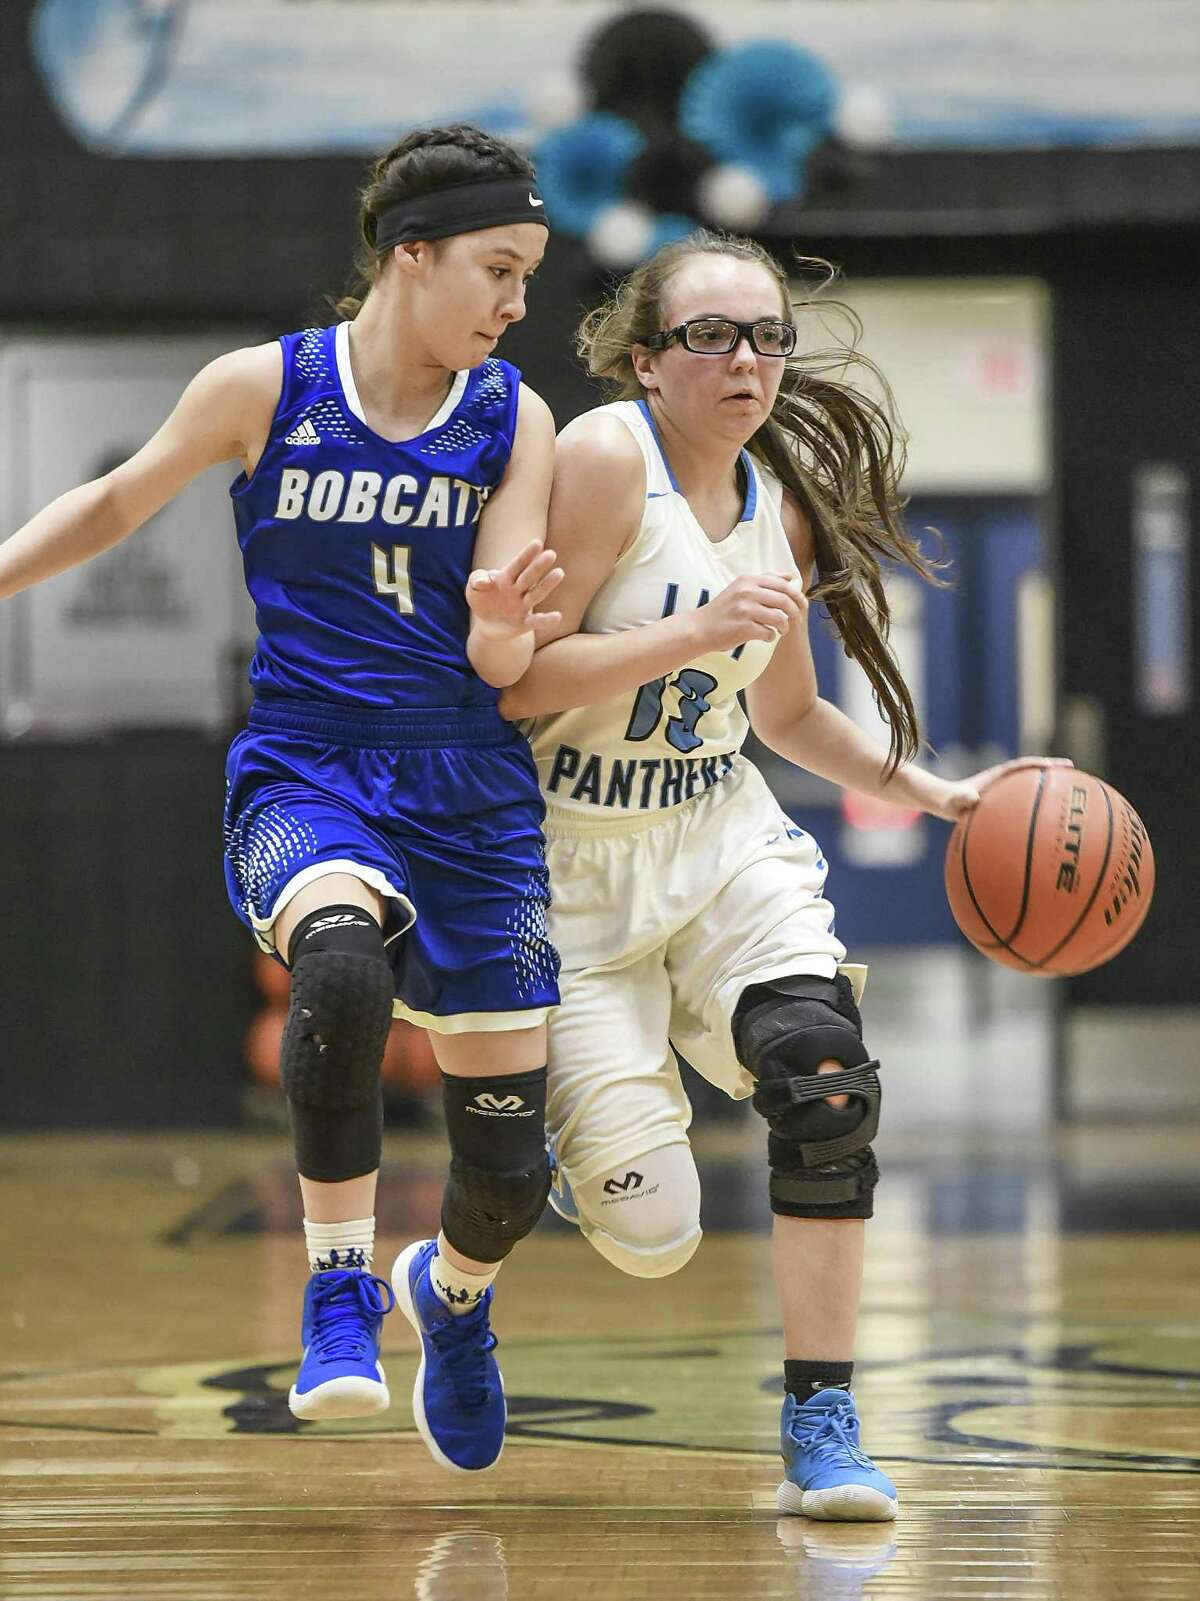 United South guard Stefanie Galindo scored 10 points as the Lady Panthers won 85-78 over South San to advance to the regional quarterfinals of the postseason. She was one of five in double figures.